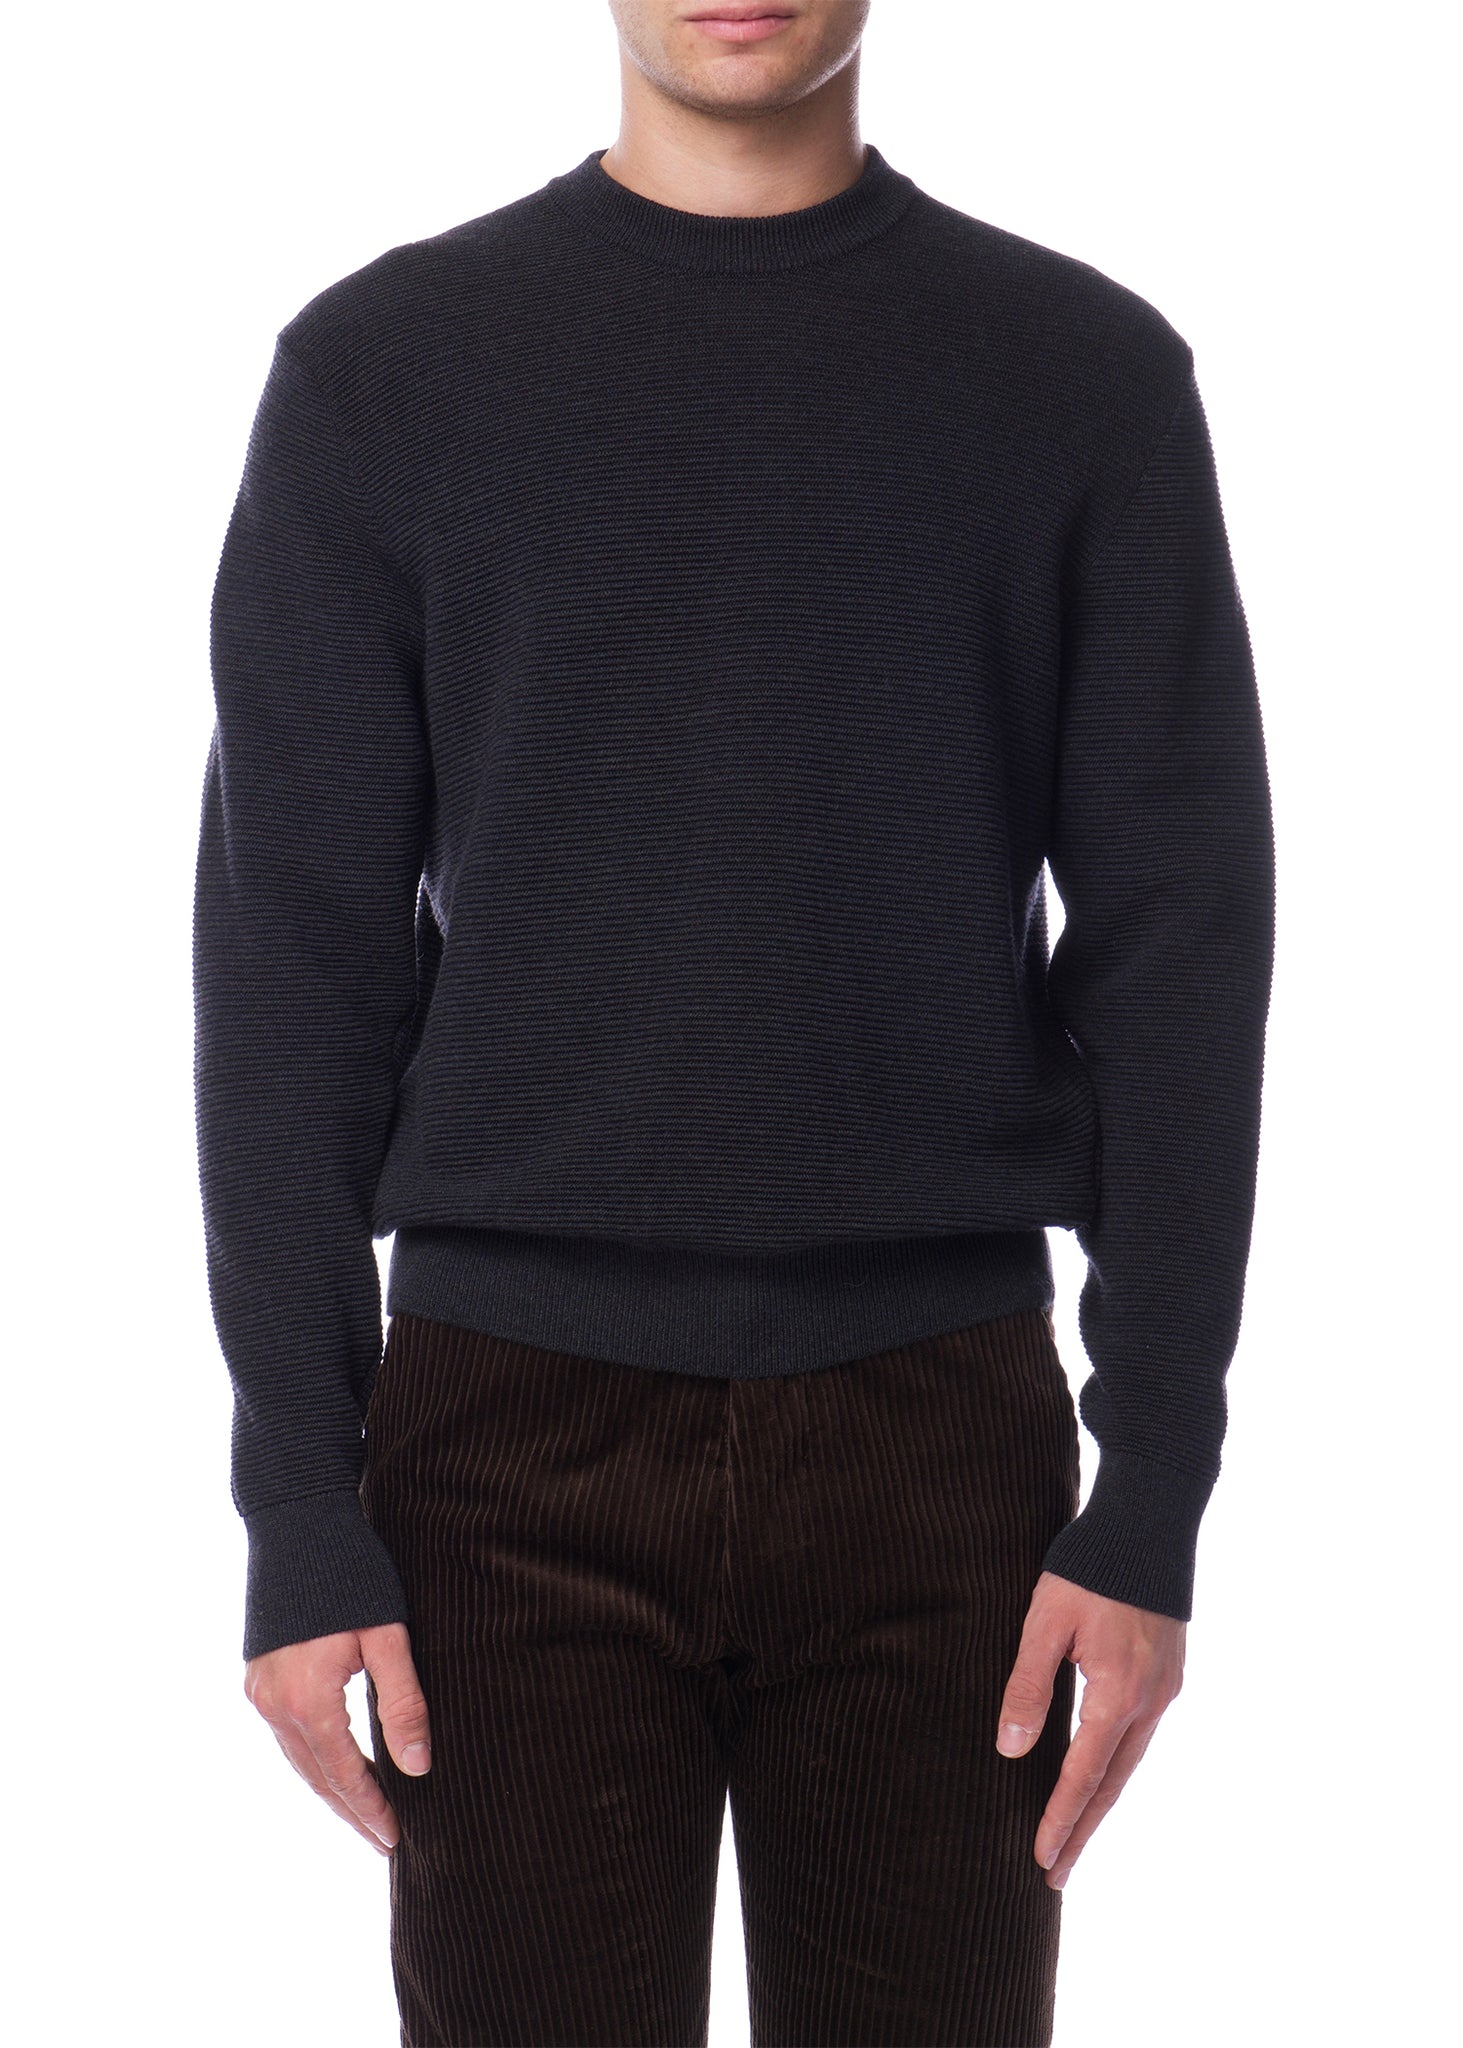 Pull Côtelé Anthracite|Ribbed Anthracite Sweater